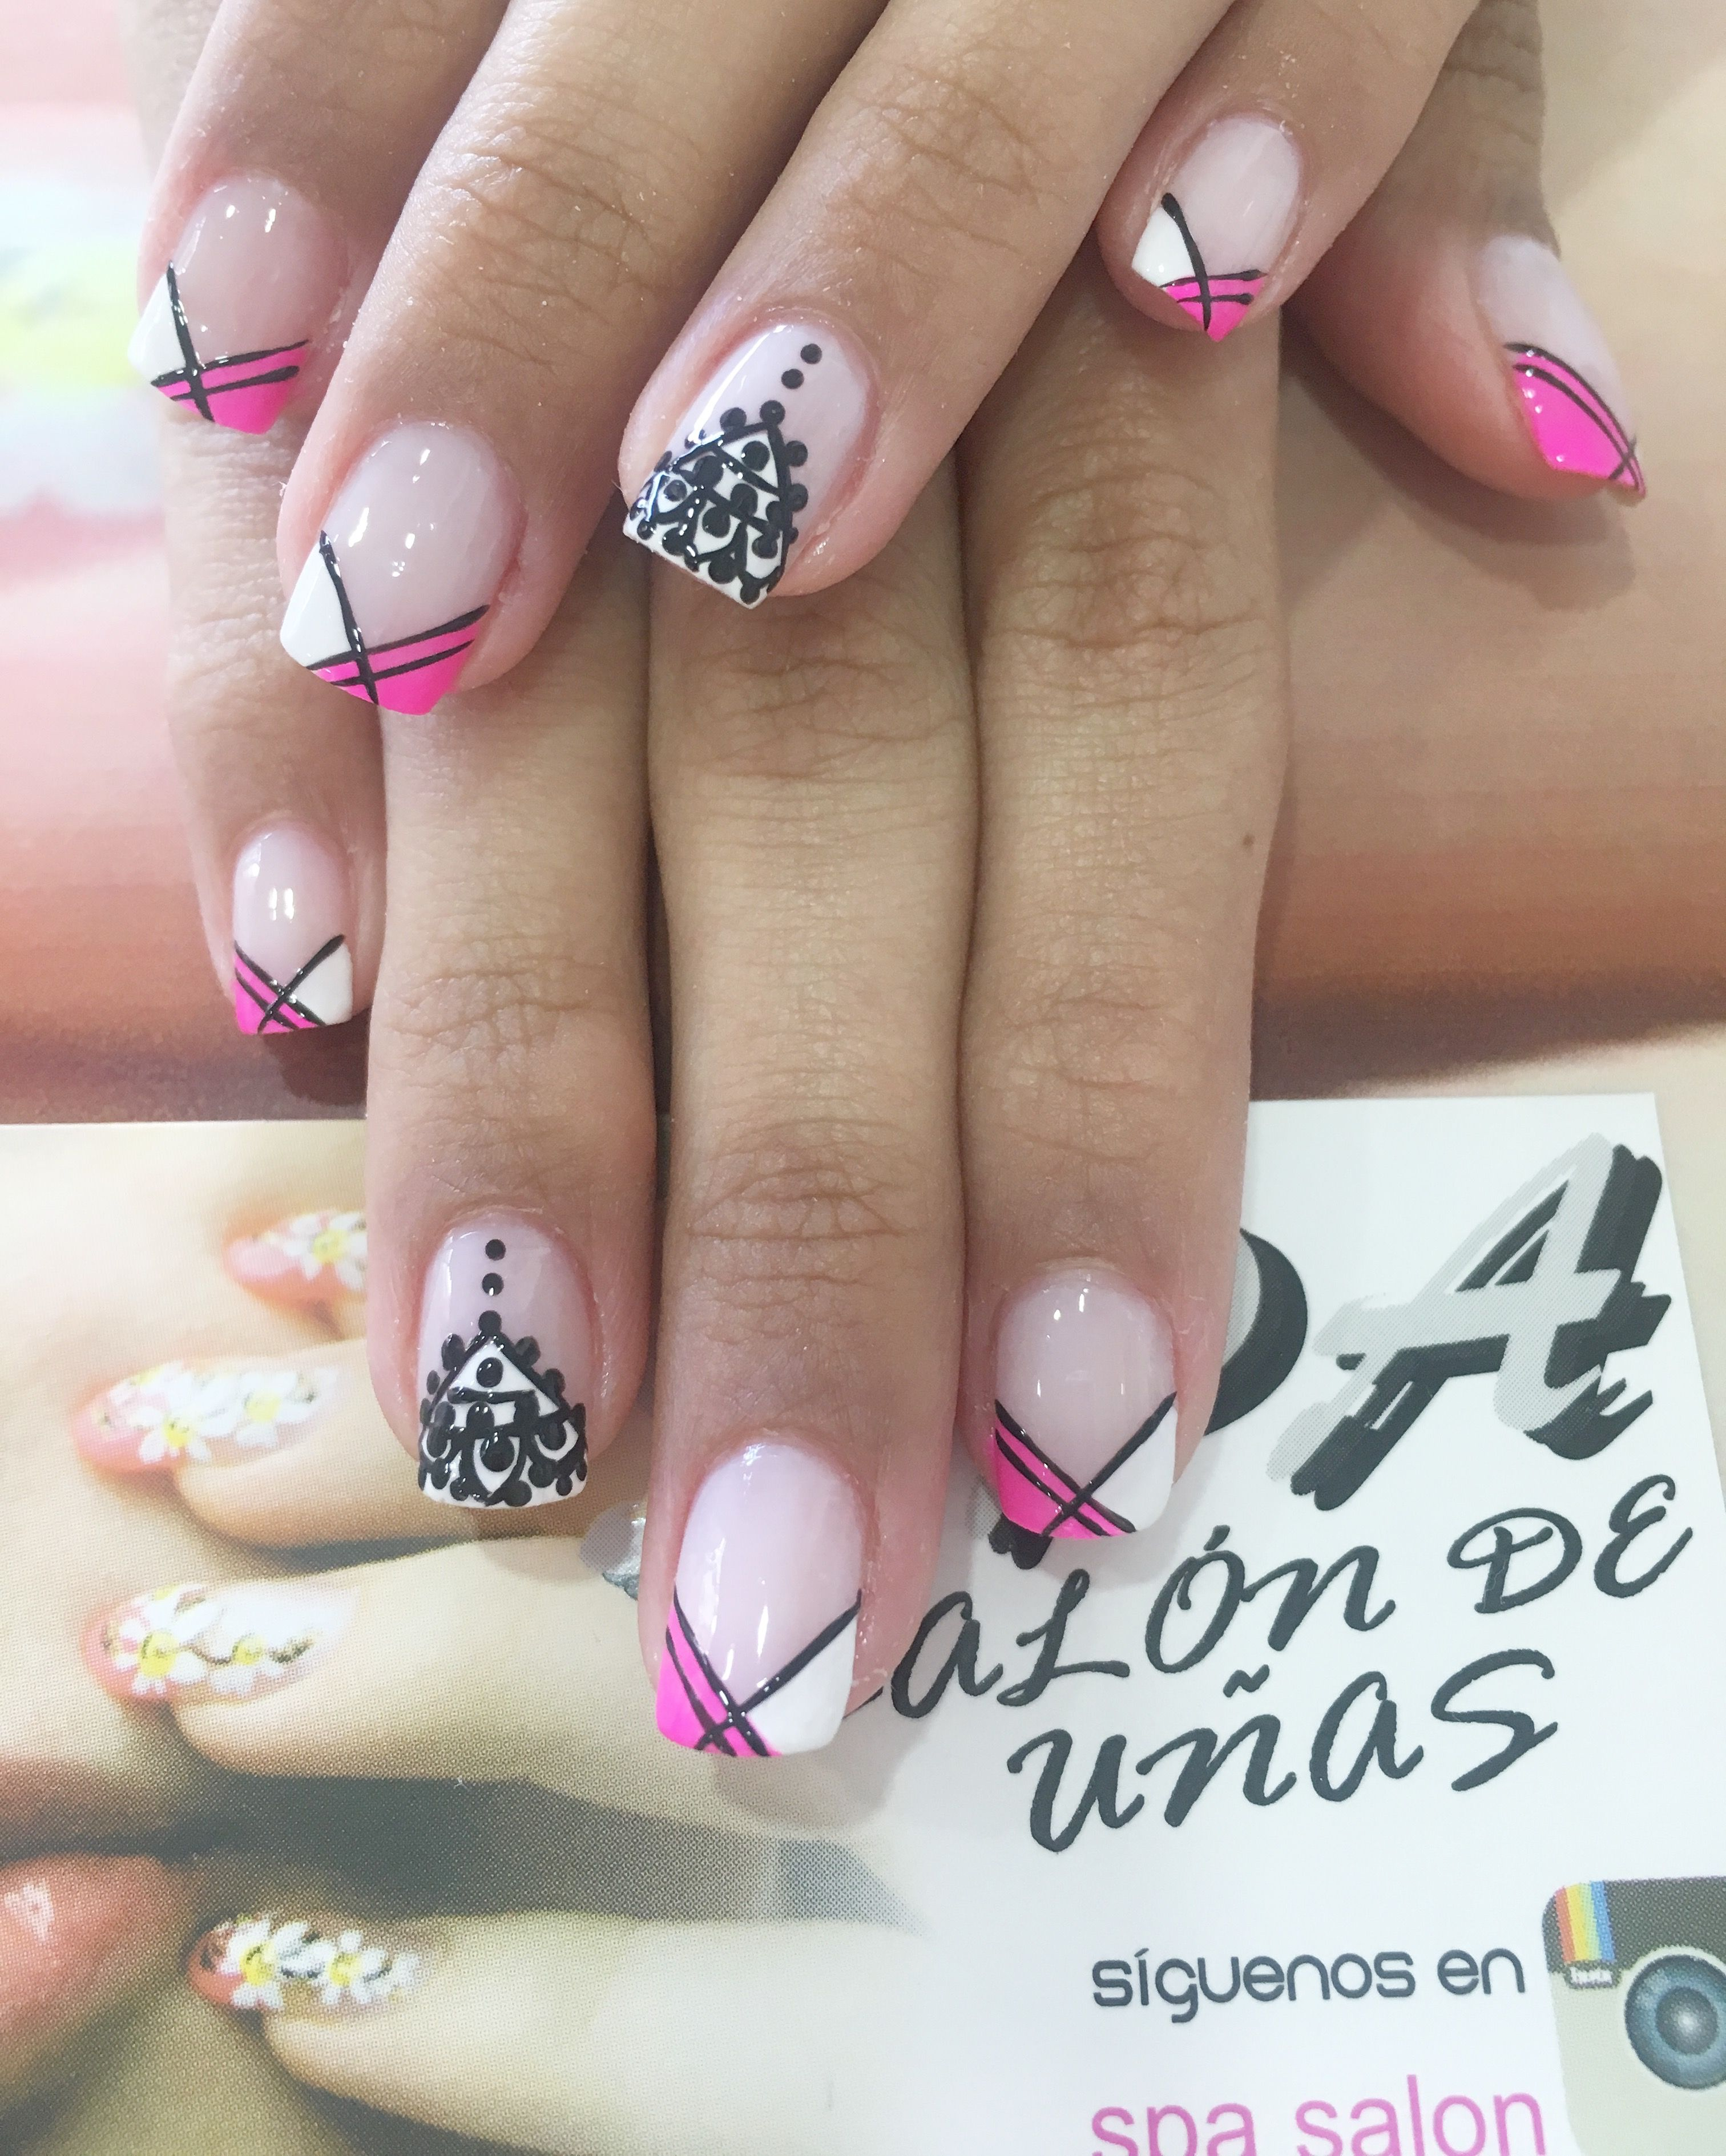 Excelente Ideas De Uñas Estante De La Pared Polaco Cresta - Ideas de ...